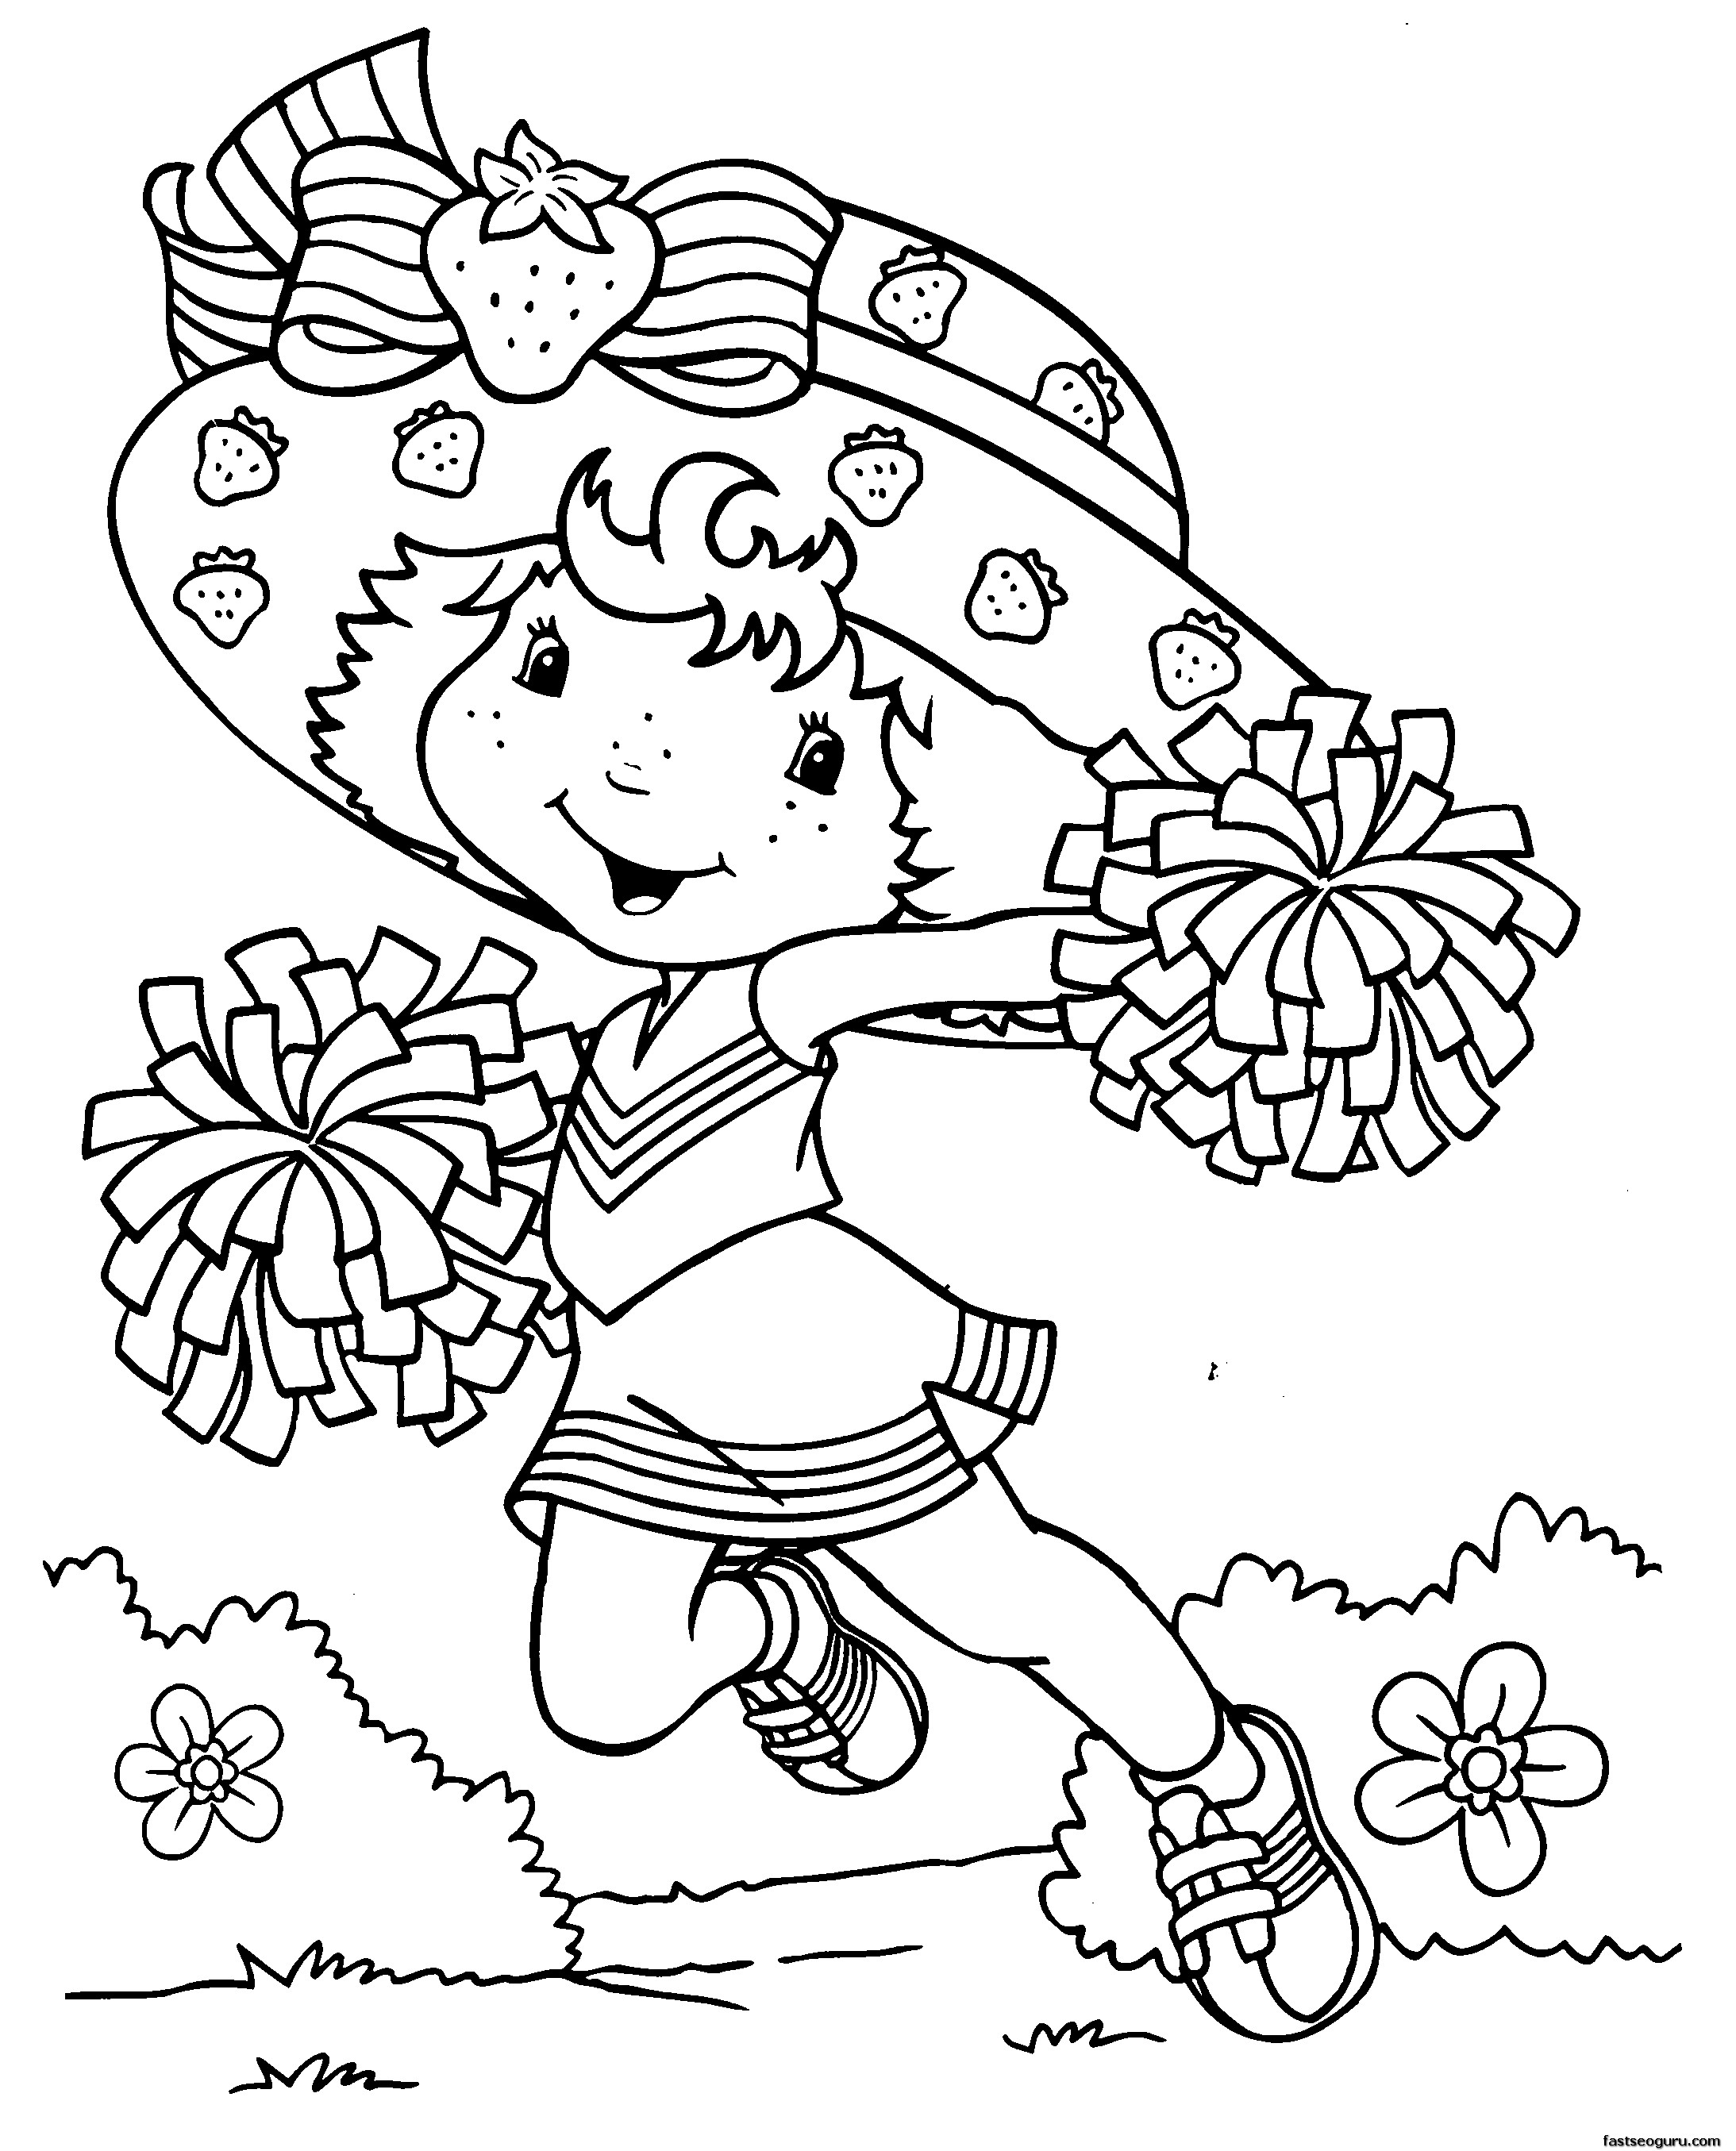 Coloring pages for girl - Coloring Pages For Girls